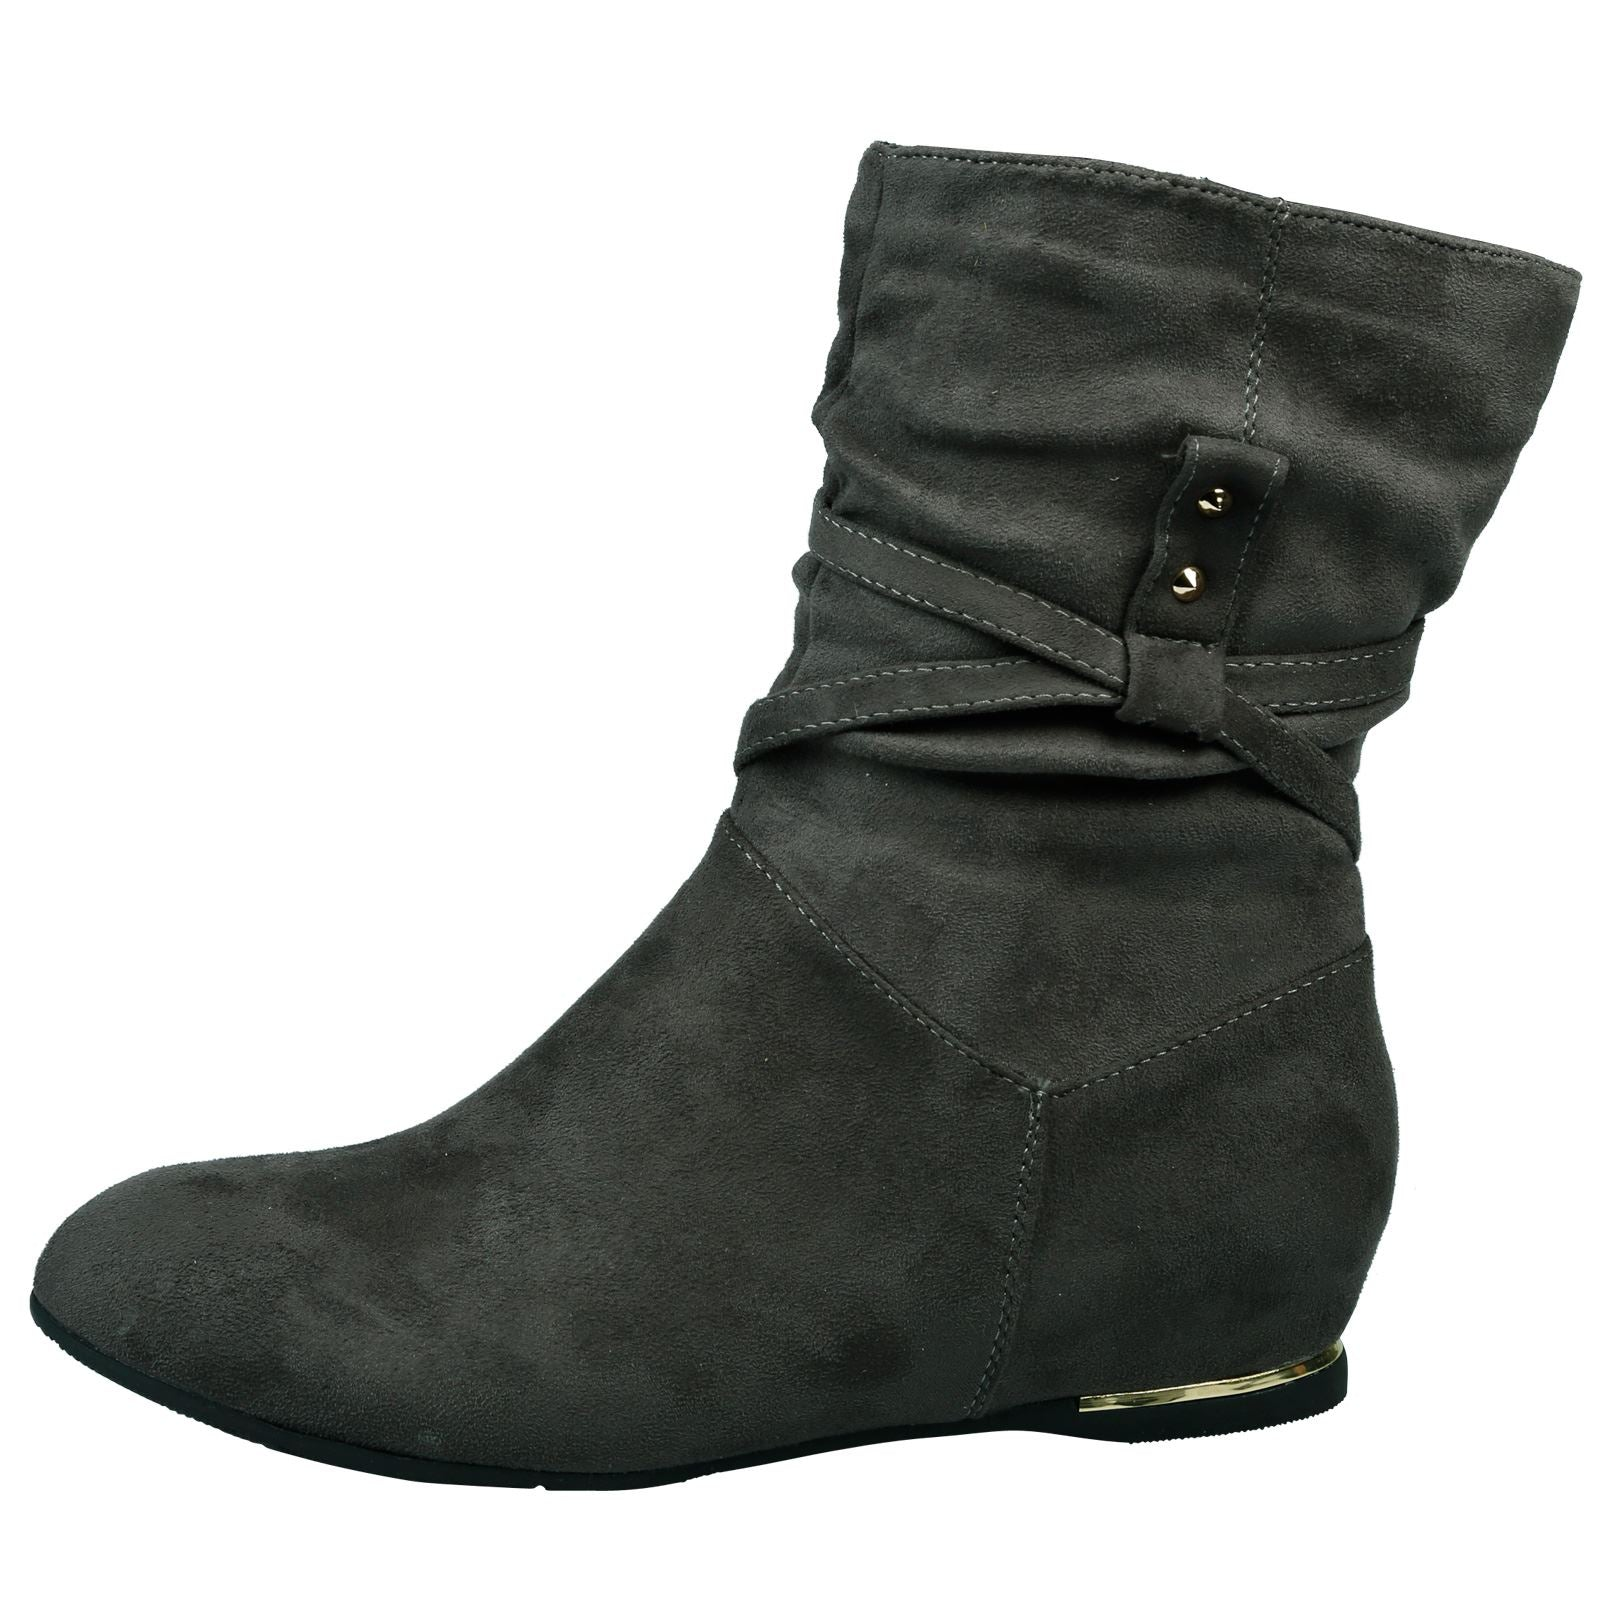 Sylvana Hidden Wedge Slouchy Ankle Boots in Grey Faux Suede